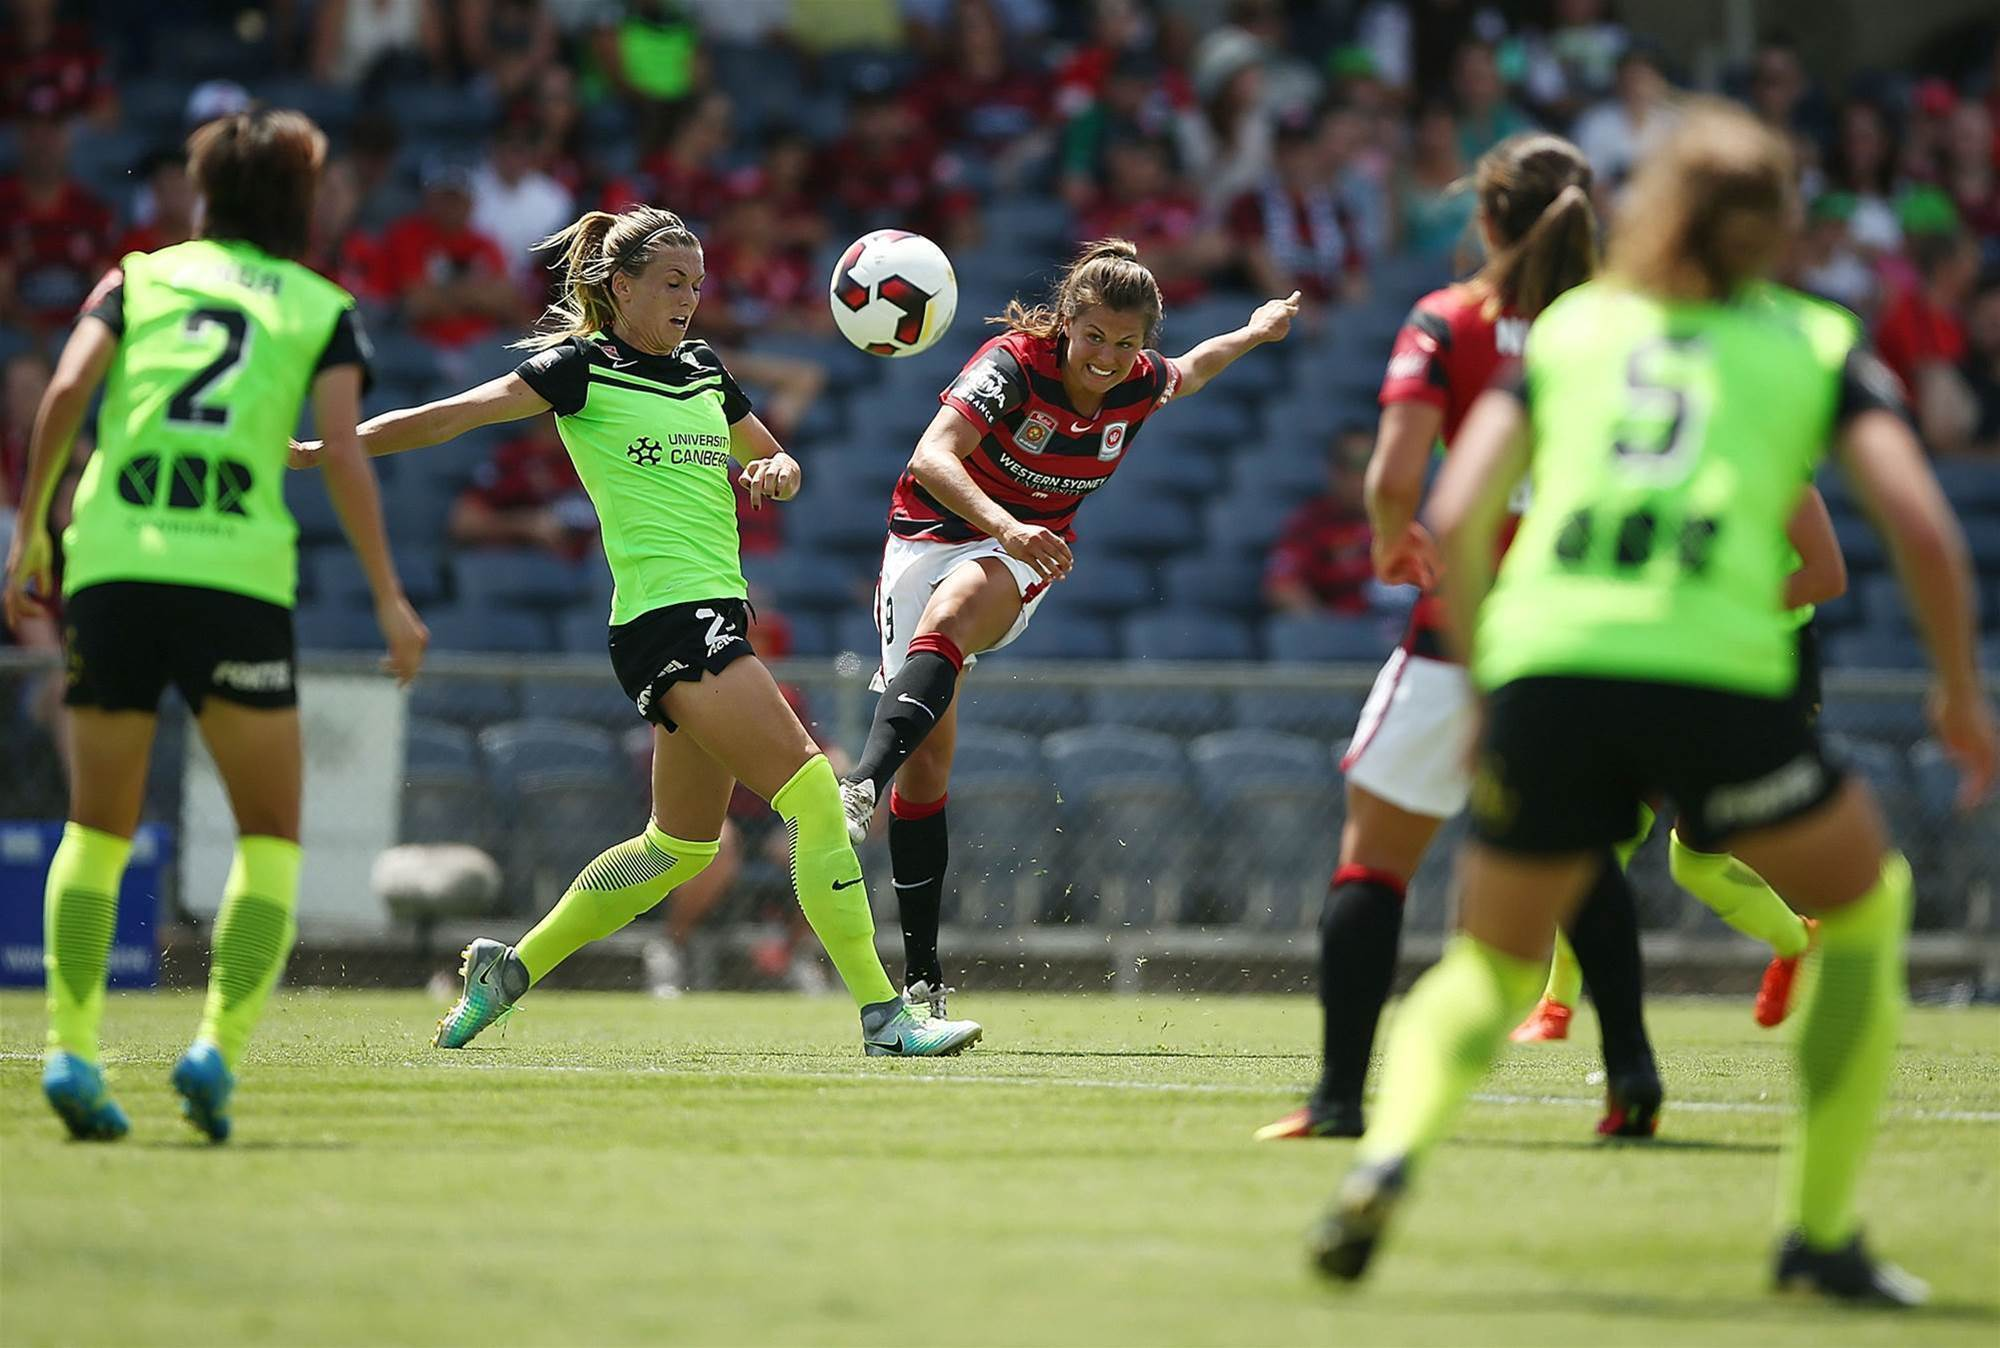 W-League Round 13 pic special